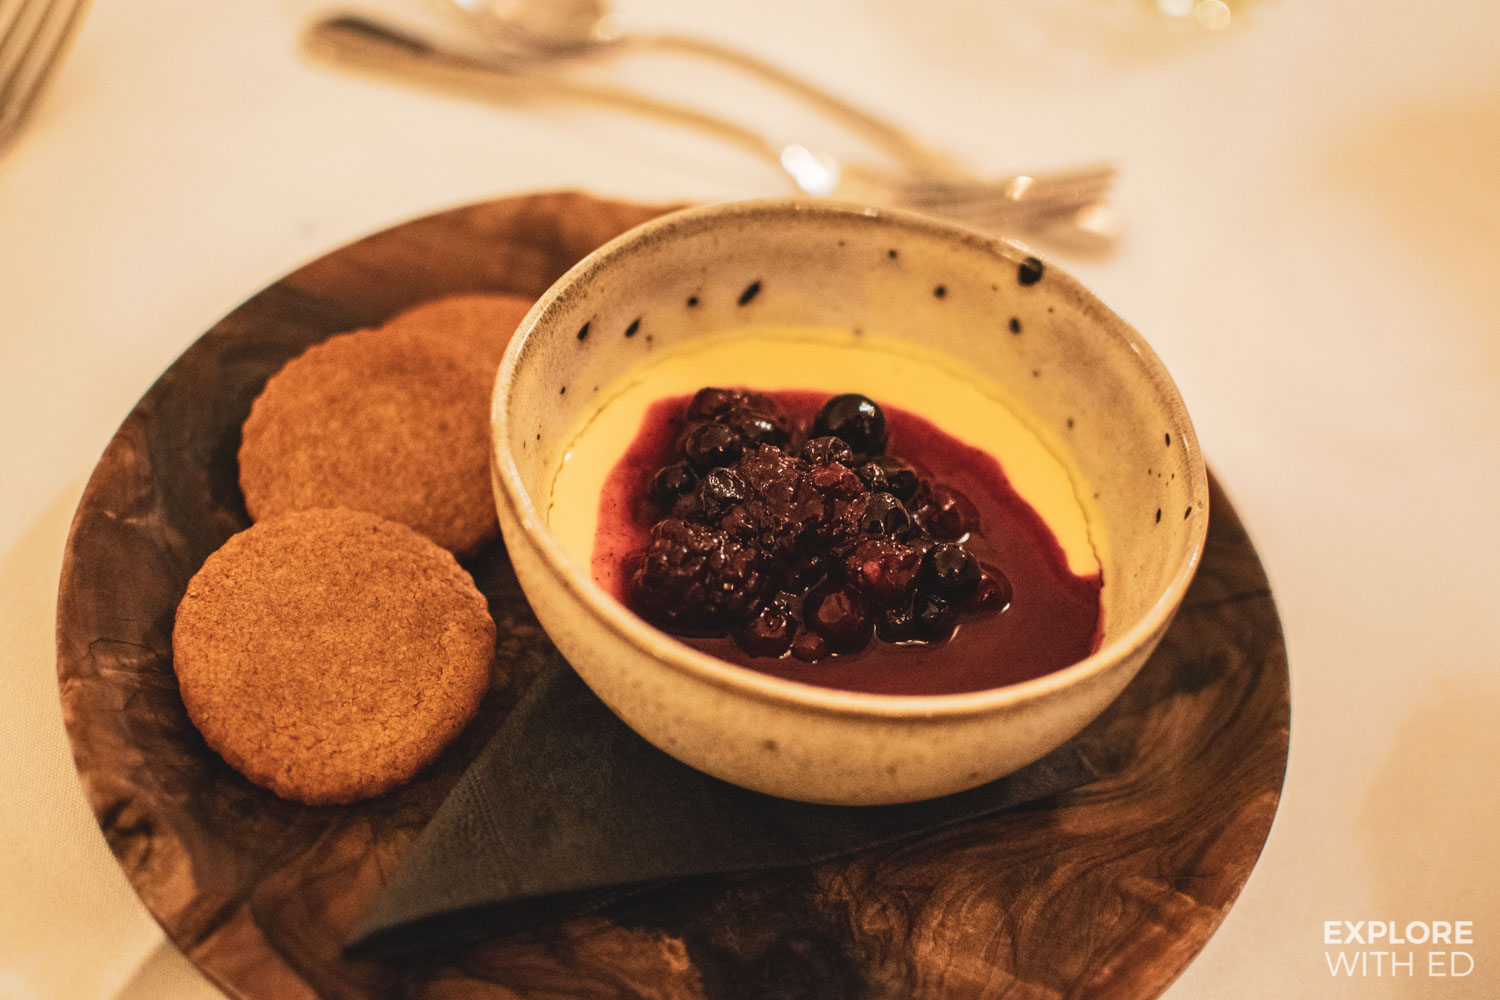 Posset with berries and gingerbread